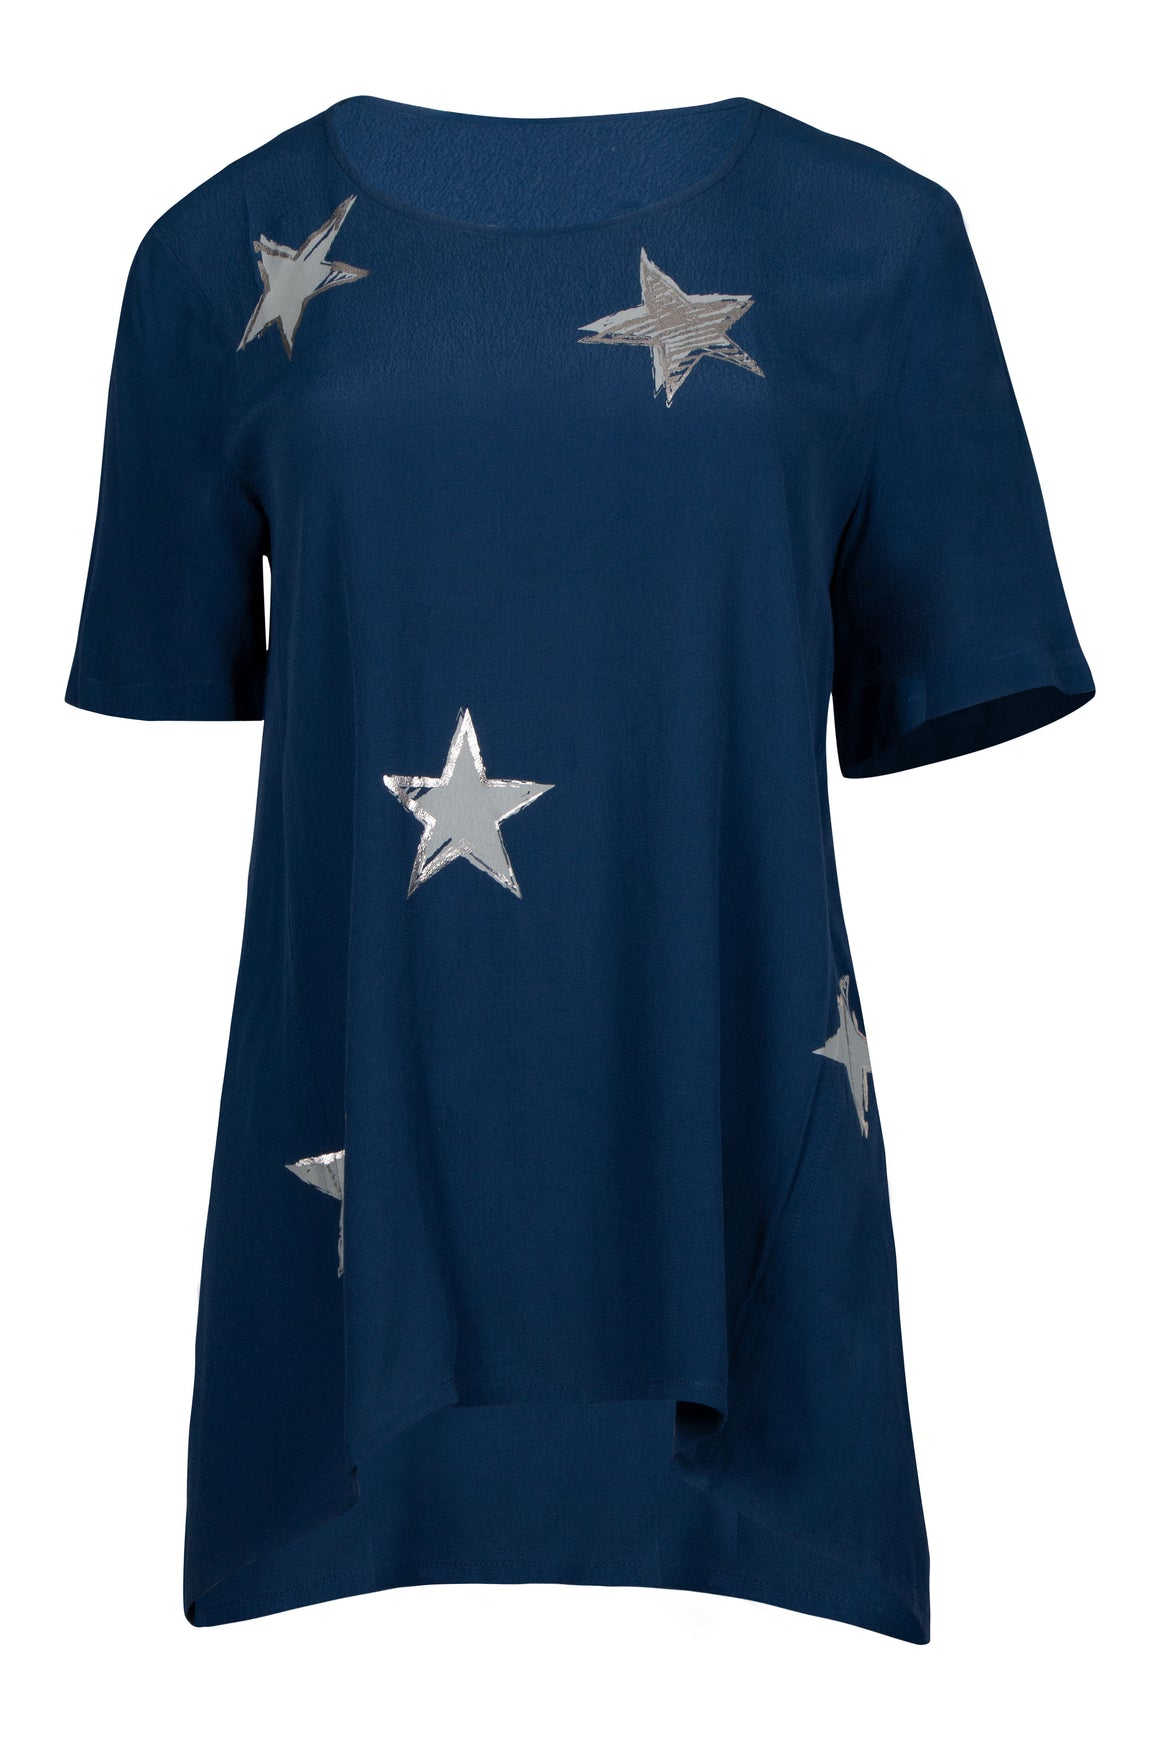 *PRE ORDER VERGE SHOOTING STAR TOP 6040JX